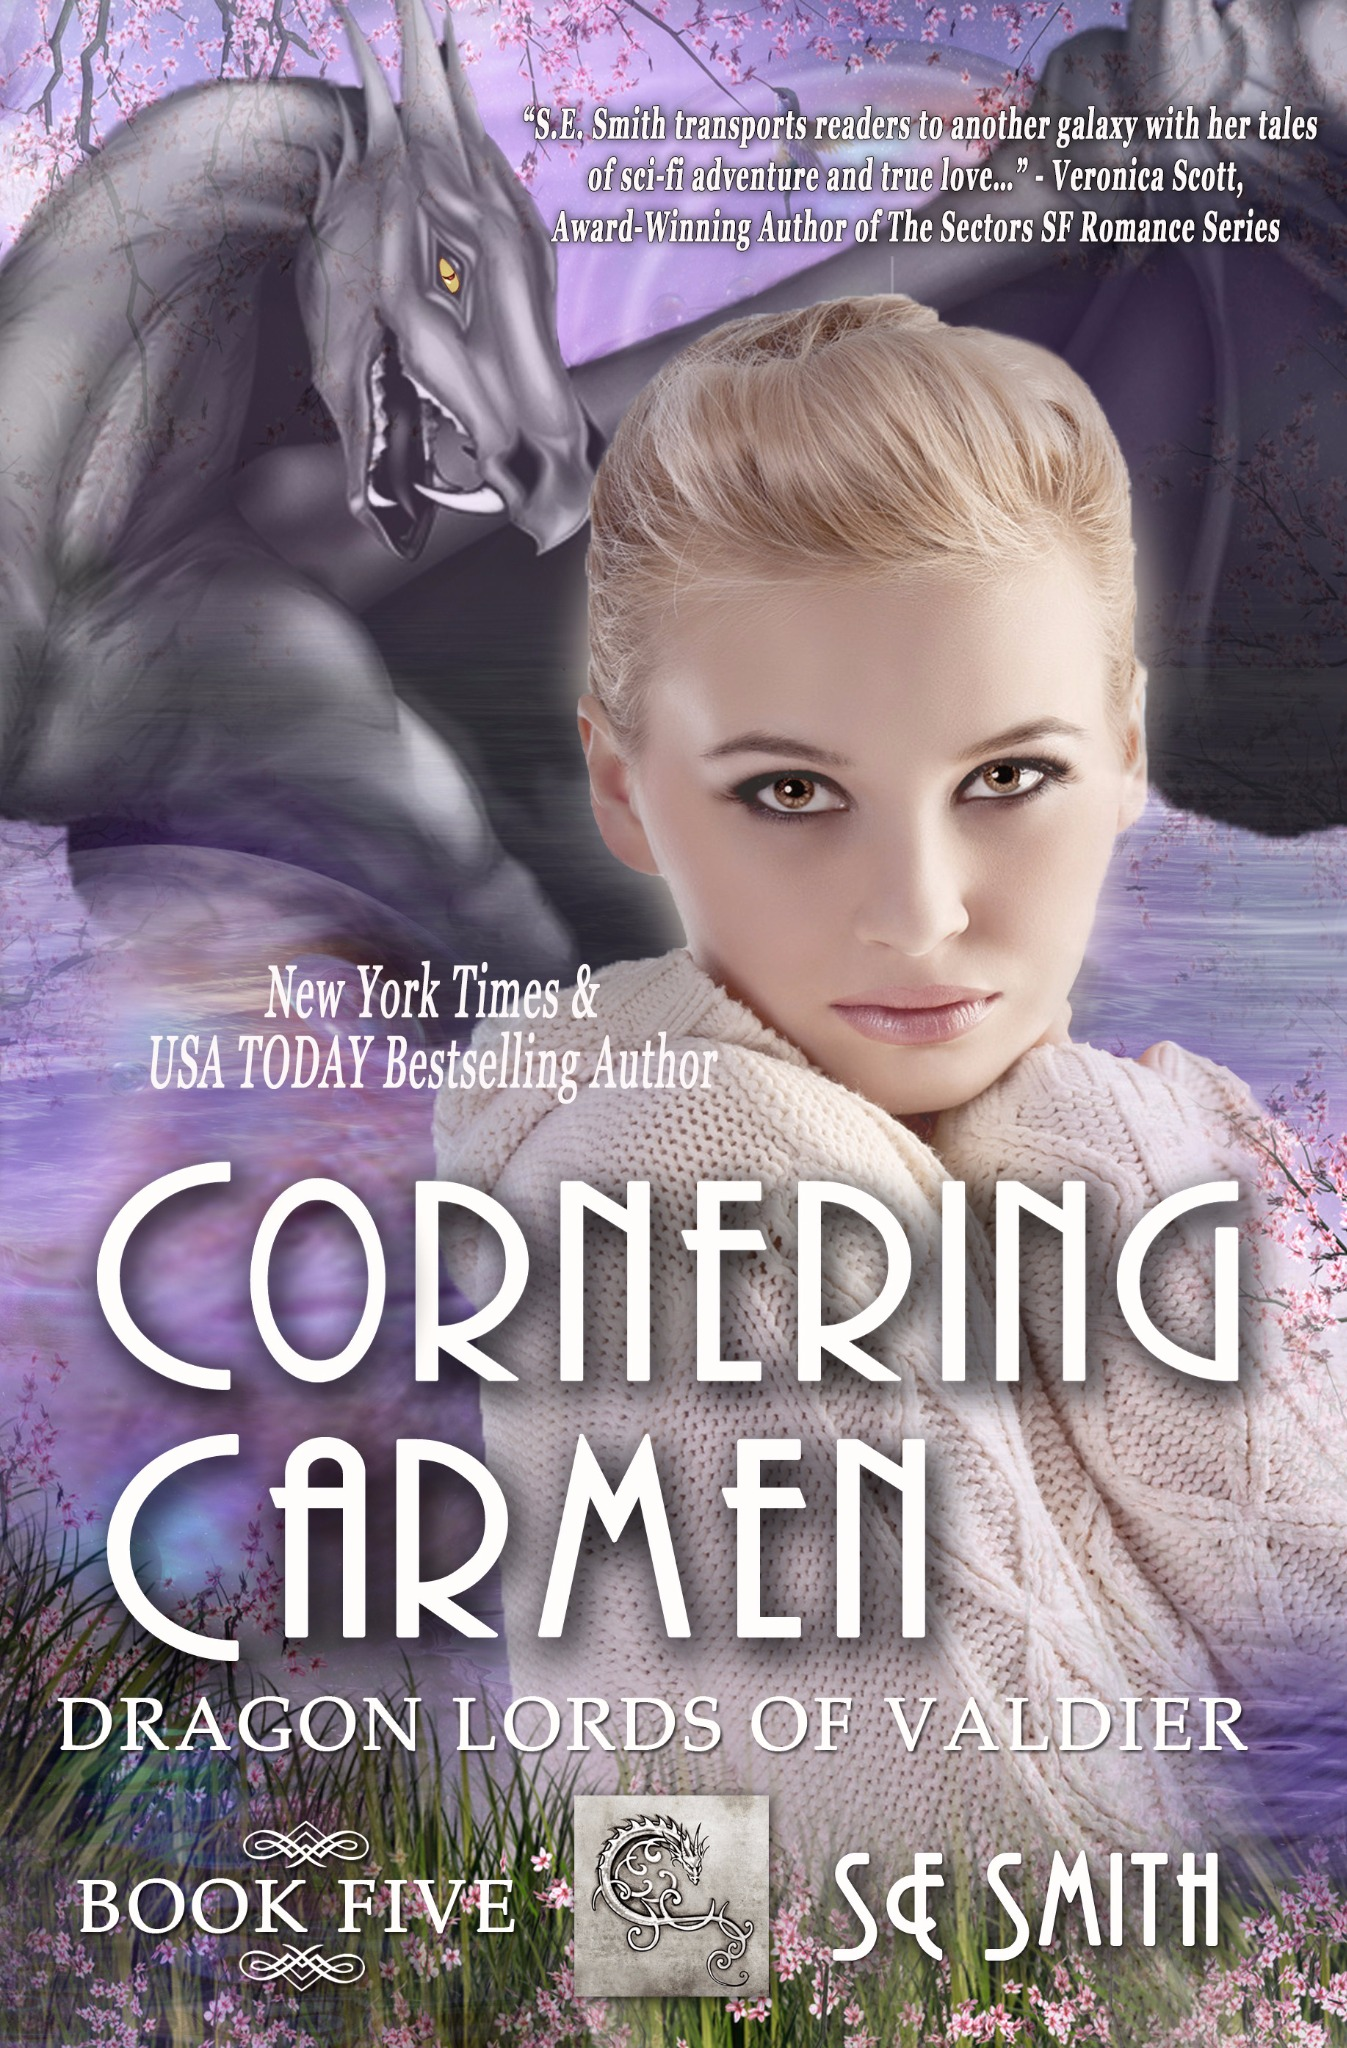 Cornering Carmen: Dragon Lords of Valdier Book 5 (Paperback)